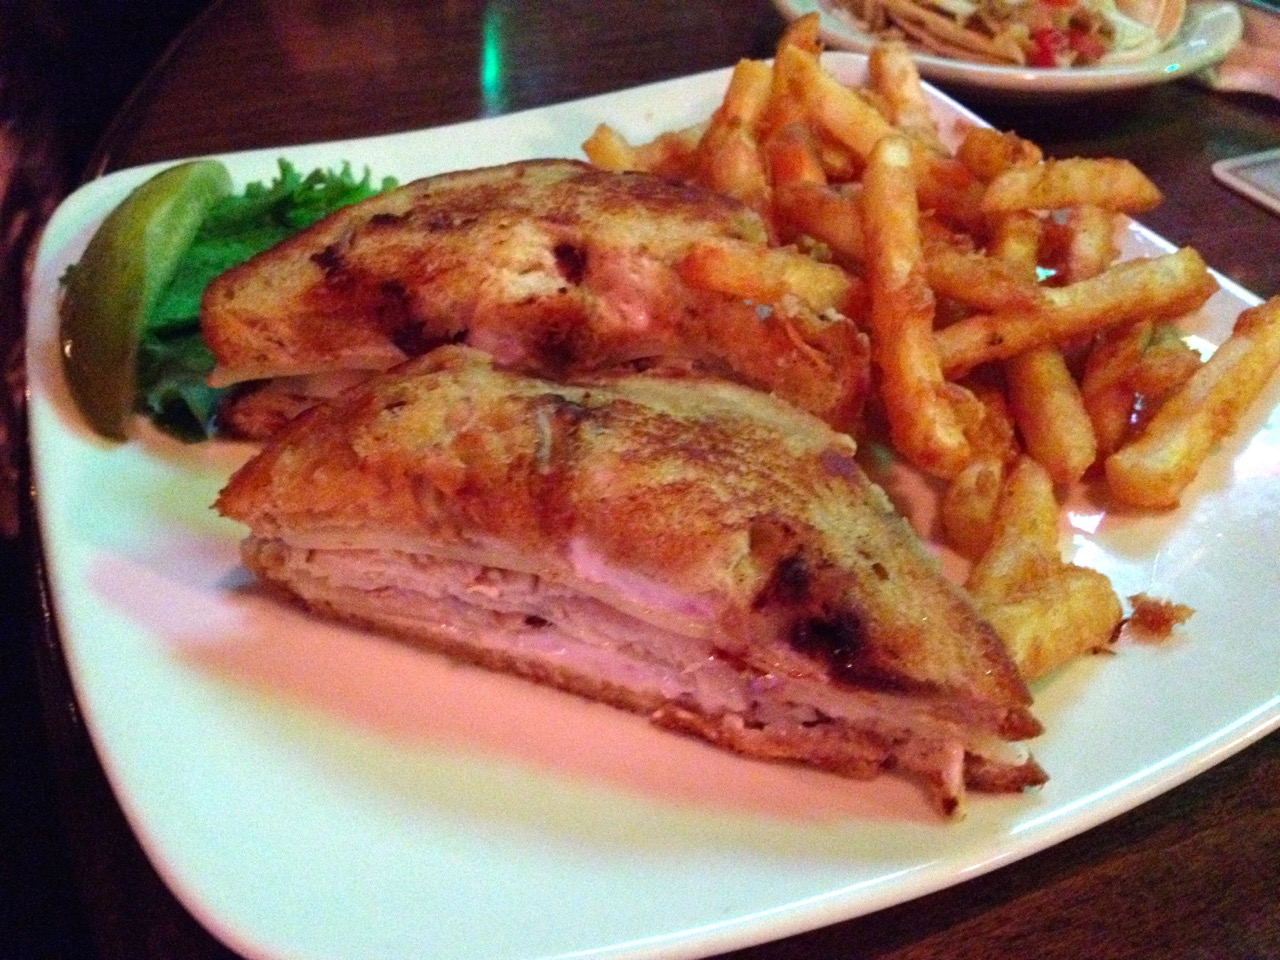 The Turkey Cranberry Sandwich at RF McDougall's – October 13 2013